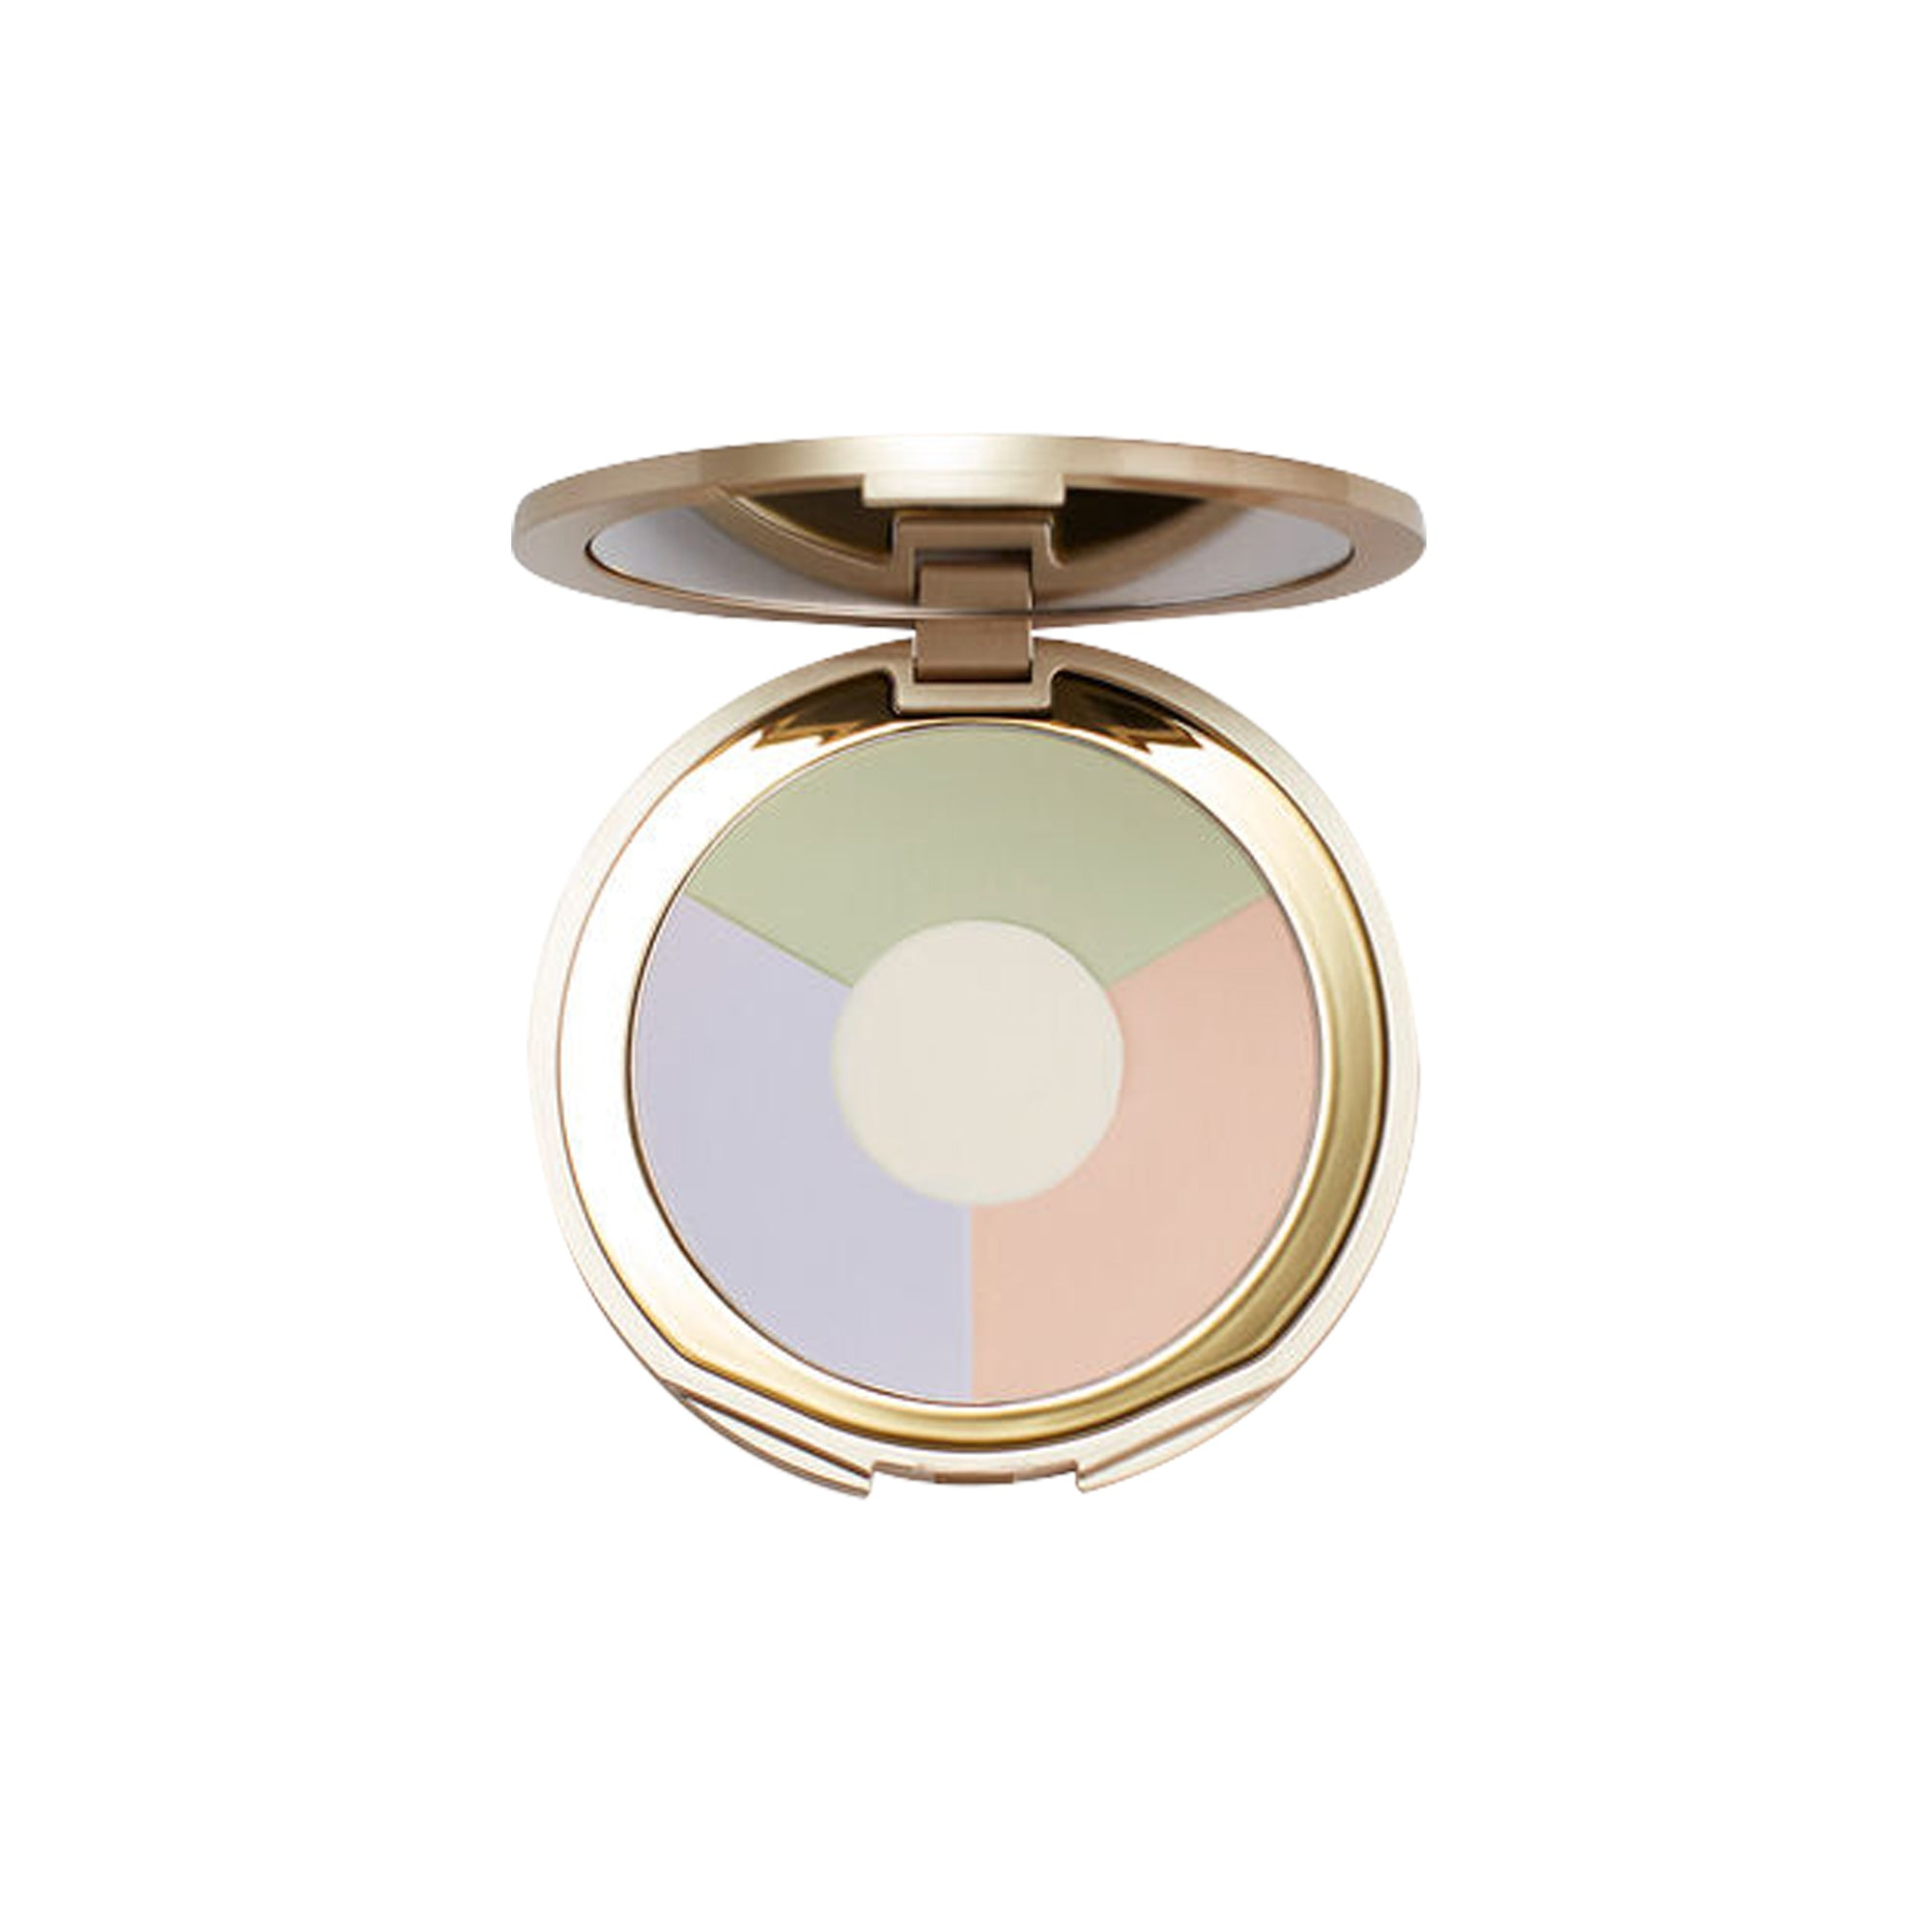 Stila One Step Correct Brightening Finishing Powder